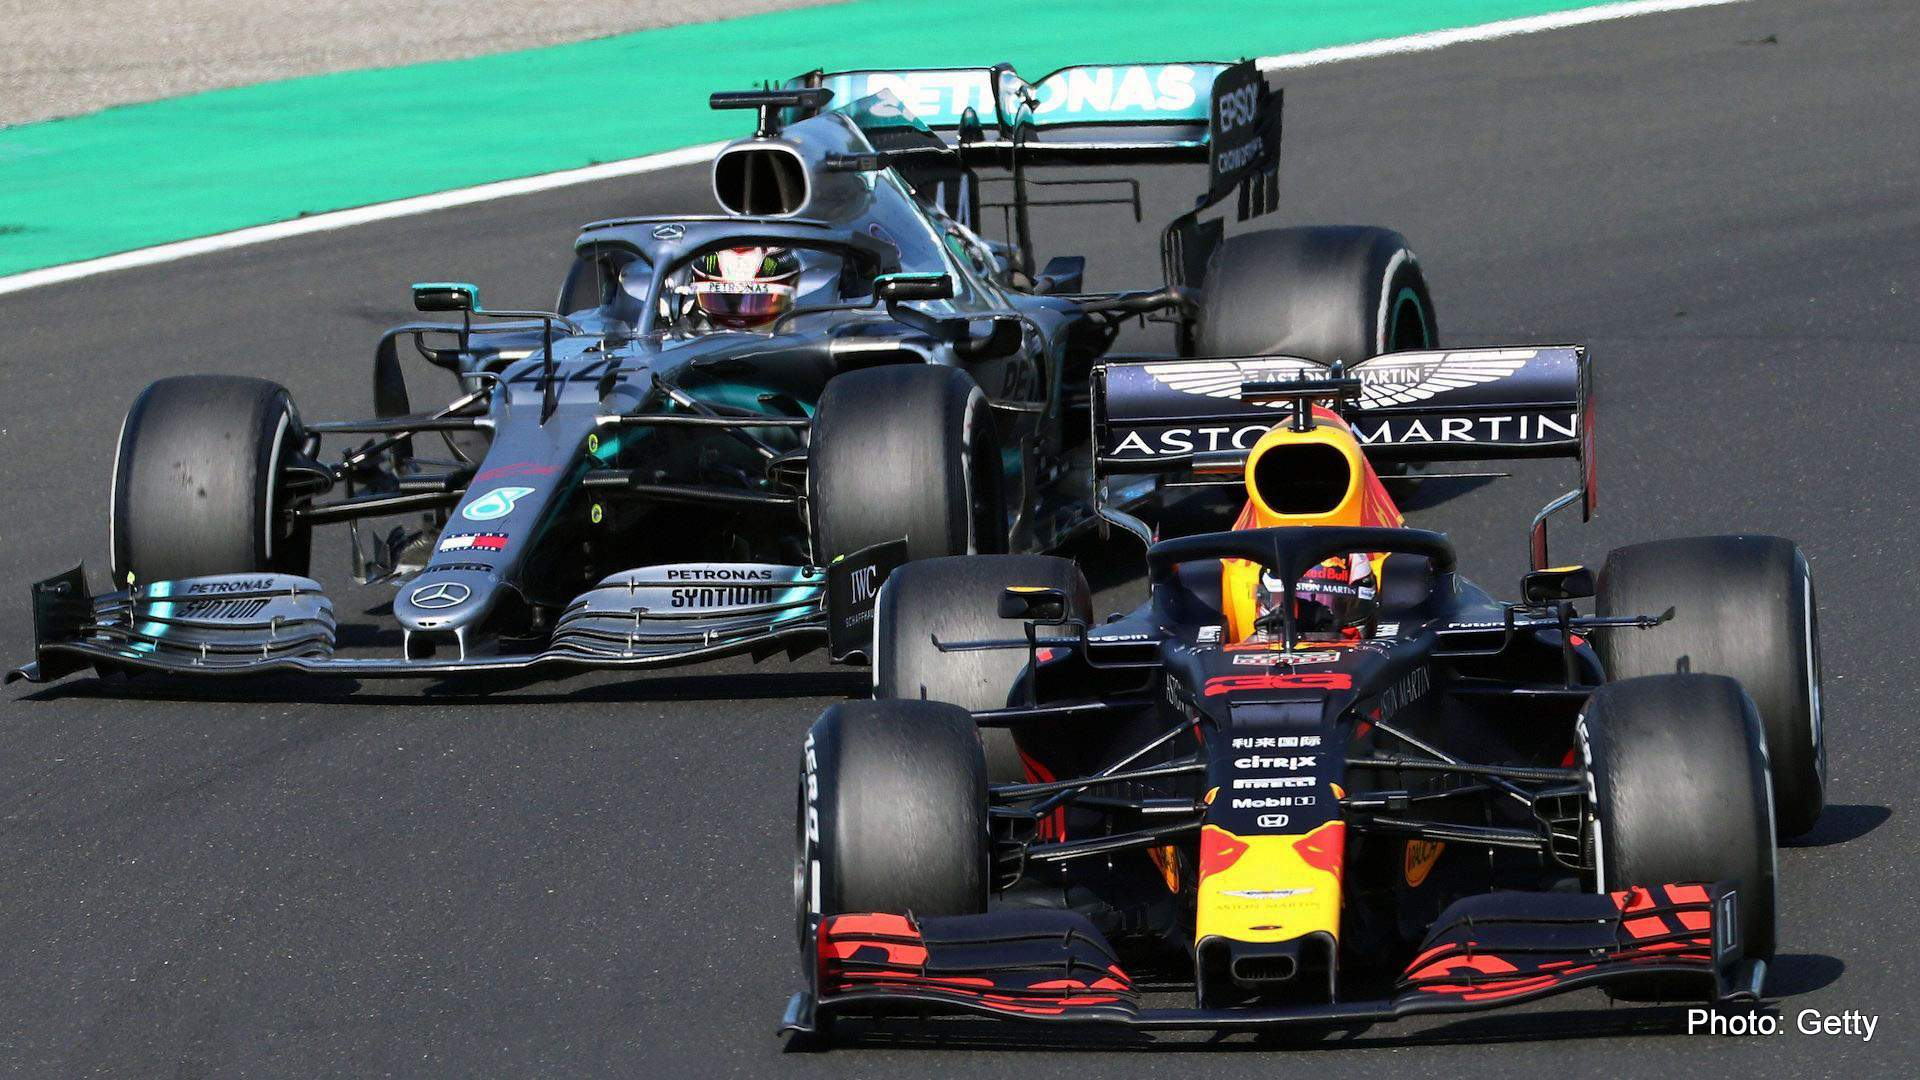 TOPSHOT - Red Bull's Dutch driver Max Verstappen (R) competes next to Mercedes' British driver Lewis Hamilton during the Formula One Hungarian Grand Prix at the Hungaroring circuit in Mogyorod near Budapest, Hungary, on August 4, 2019. (Photo by FERENC ISZA / AFP) (Photo credit should read FERENC ISZA/AFP/Getty Images)